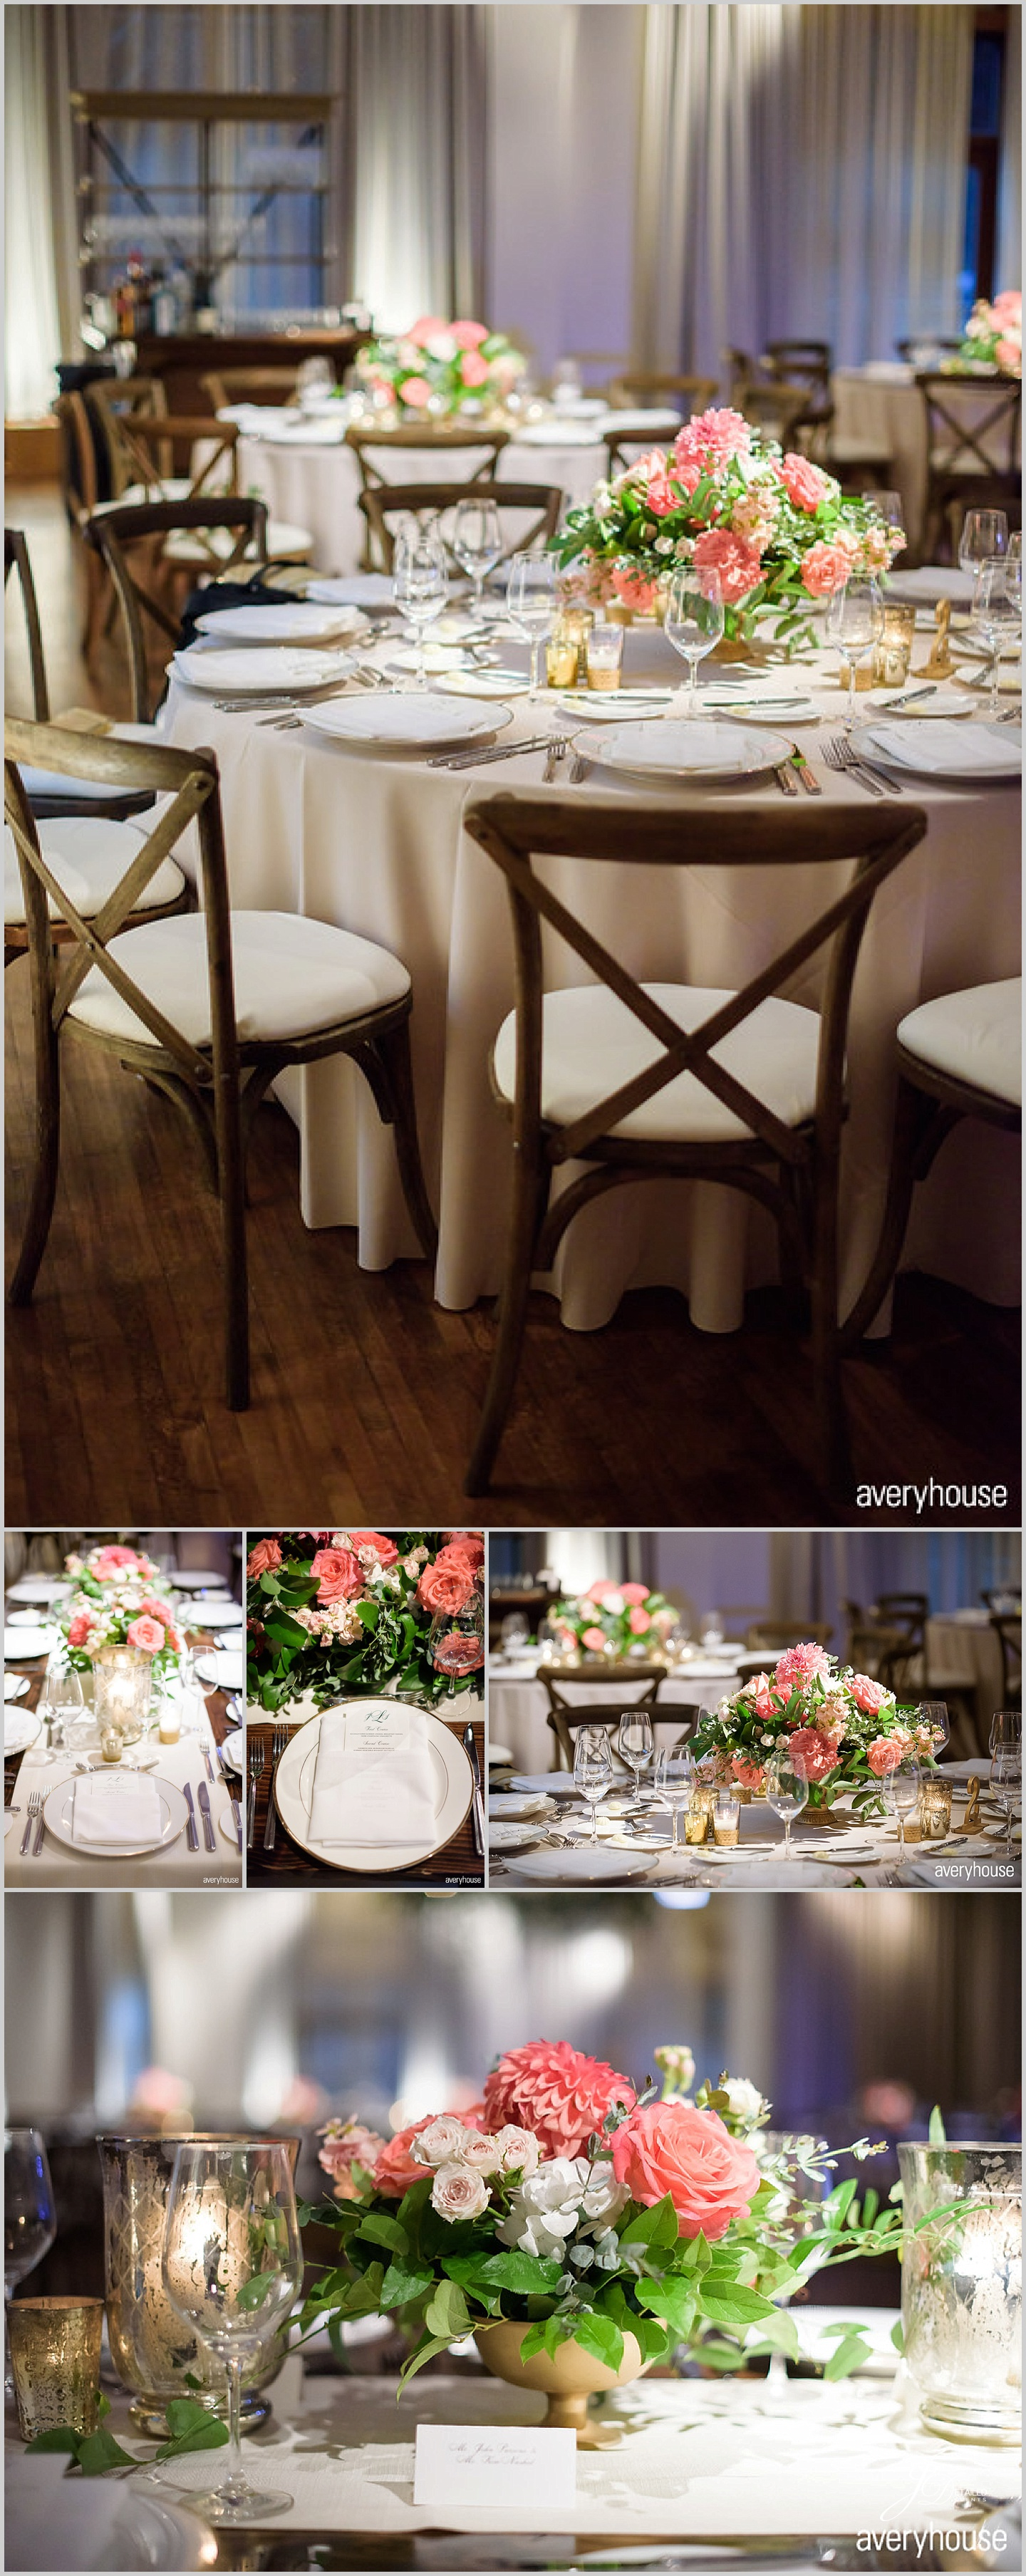 avery-house-wedding-chicago_2223